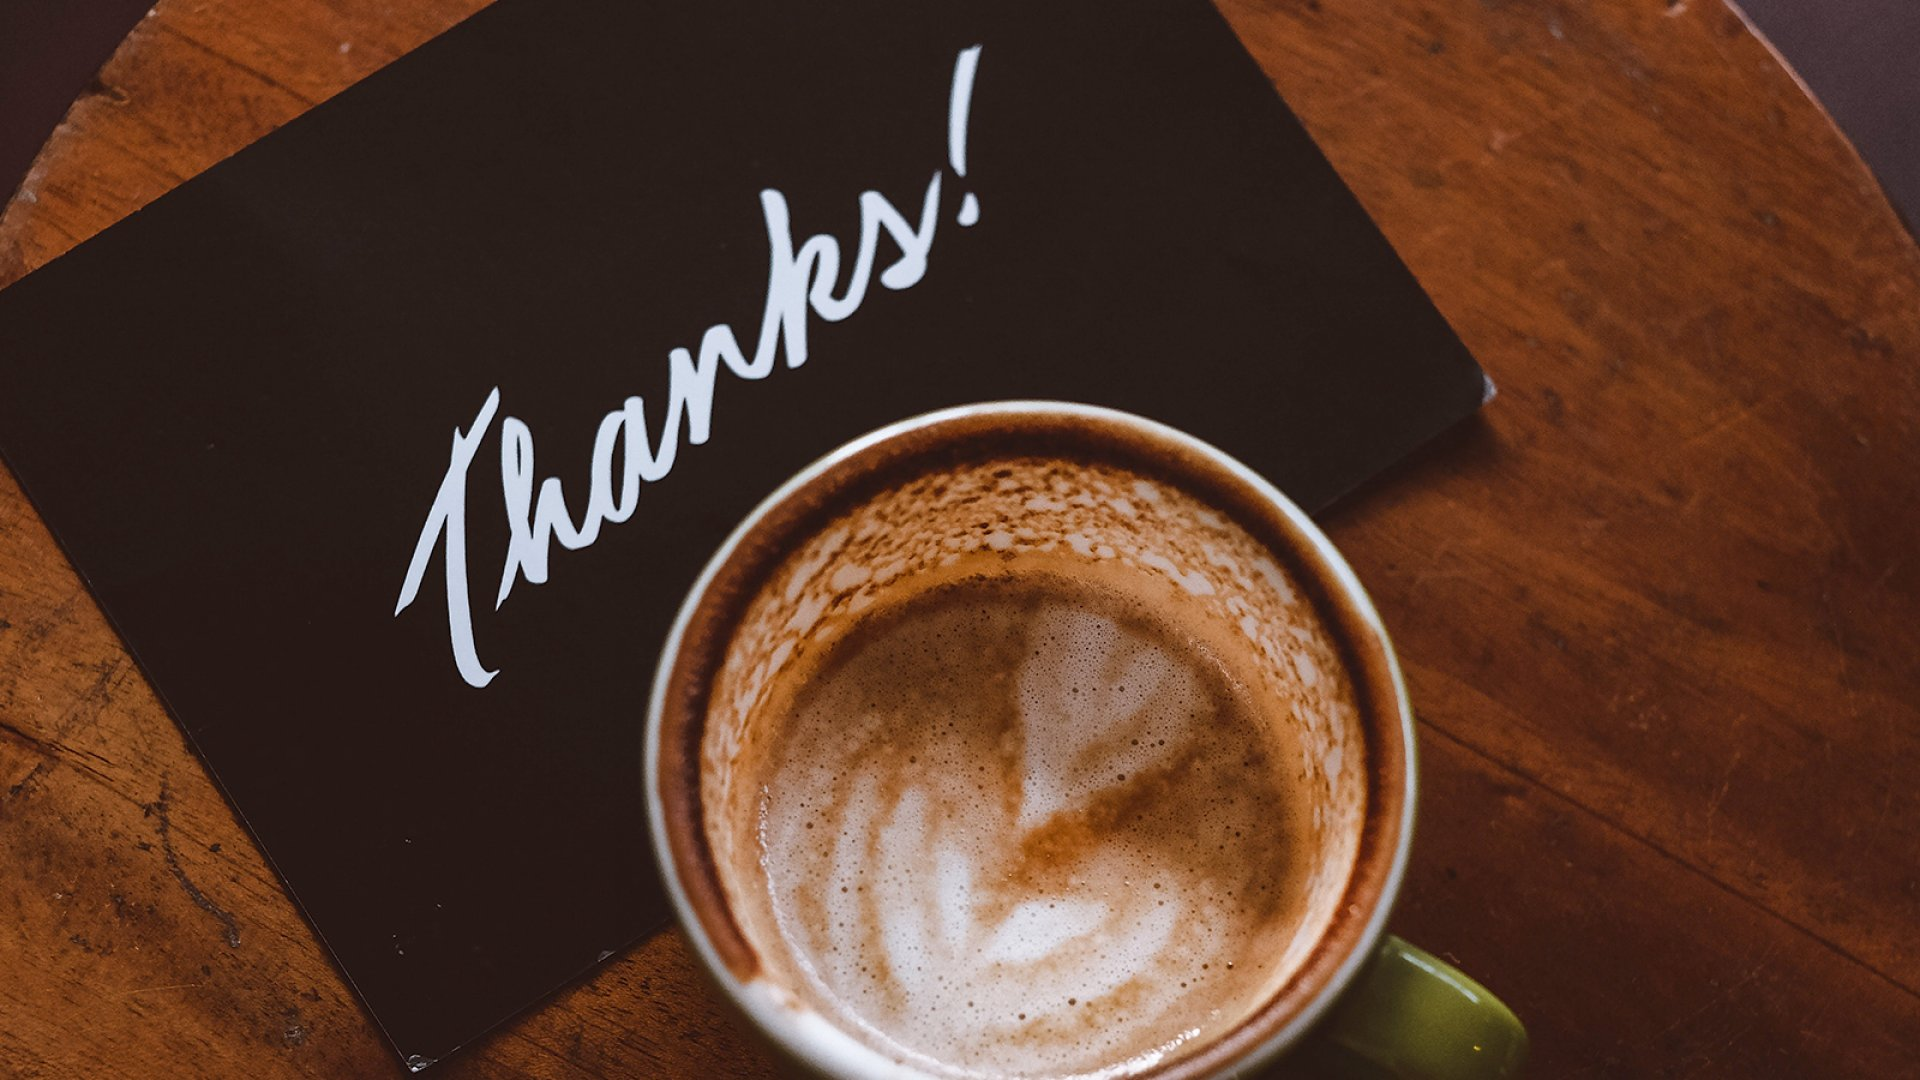 How to Write a Sincere Thank-You Note That Will Make People Smile